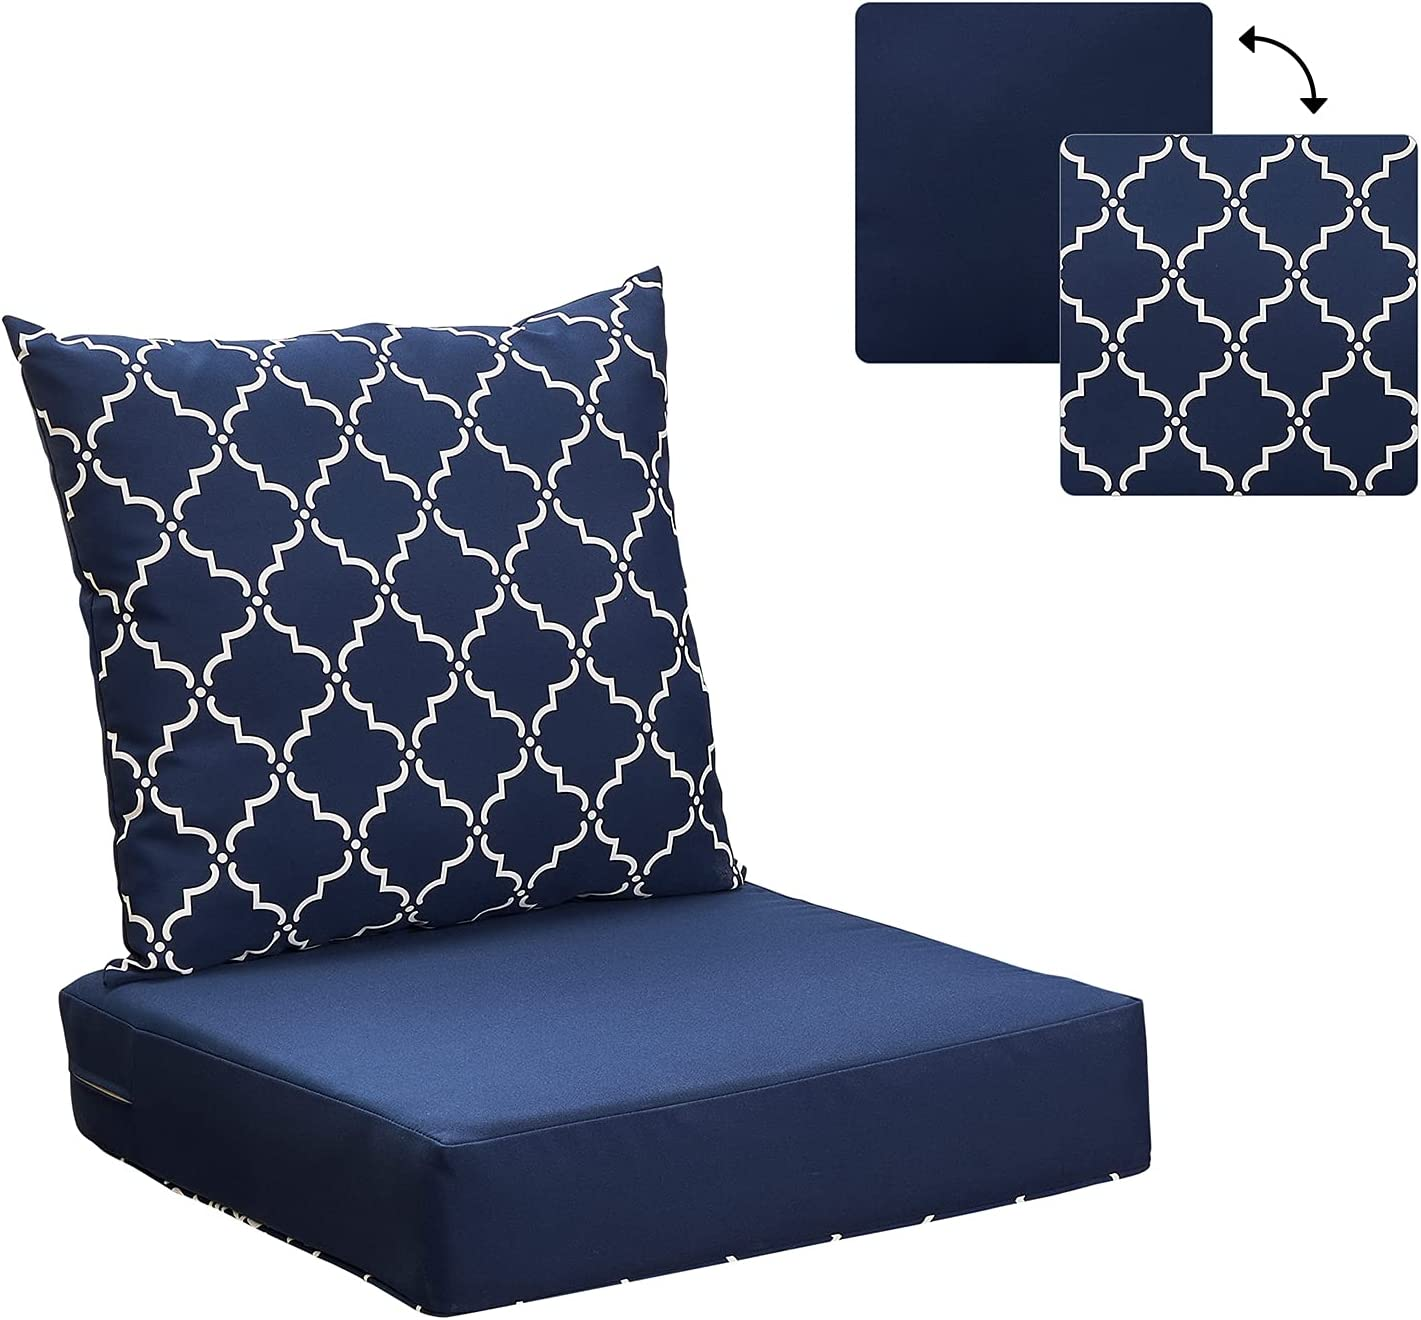 ANONER Outdoor Cushions Set for Patio Furniture 24x24 Replacement Deep Seat Patio Chair Cushions with Reversible Cover, Blue Lattice